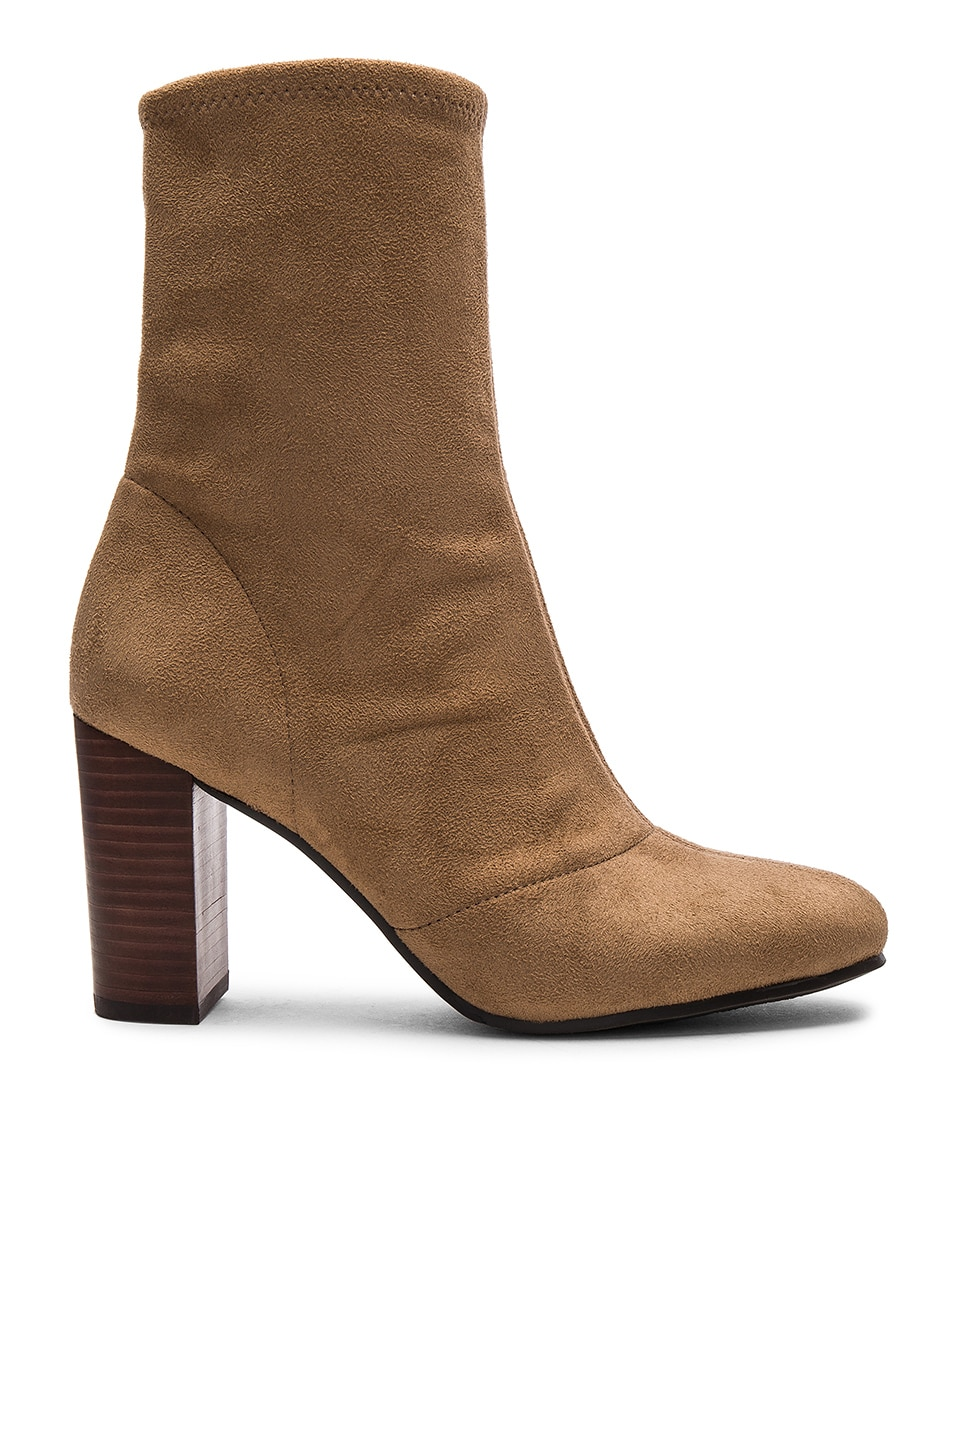 Vince Camuto Sendra Booties in Khaki